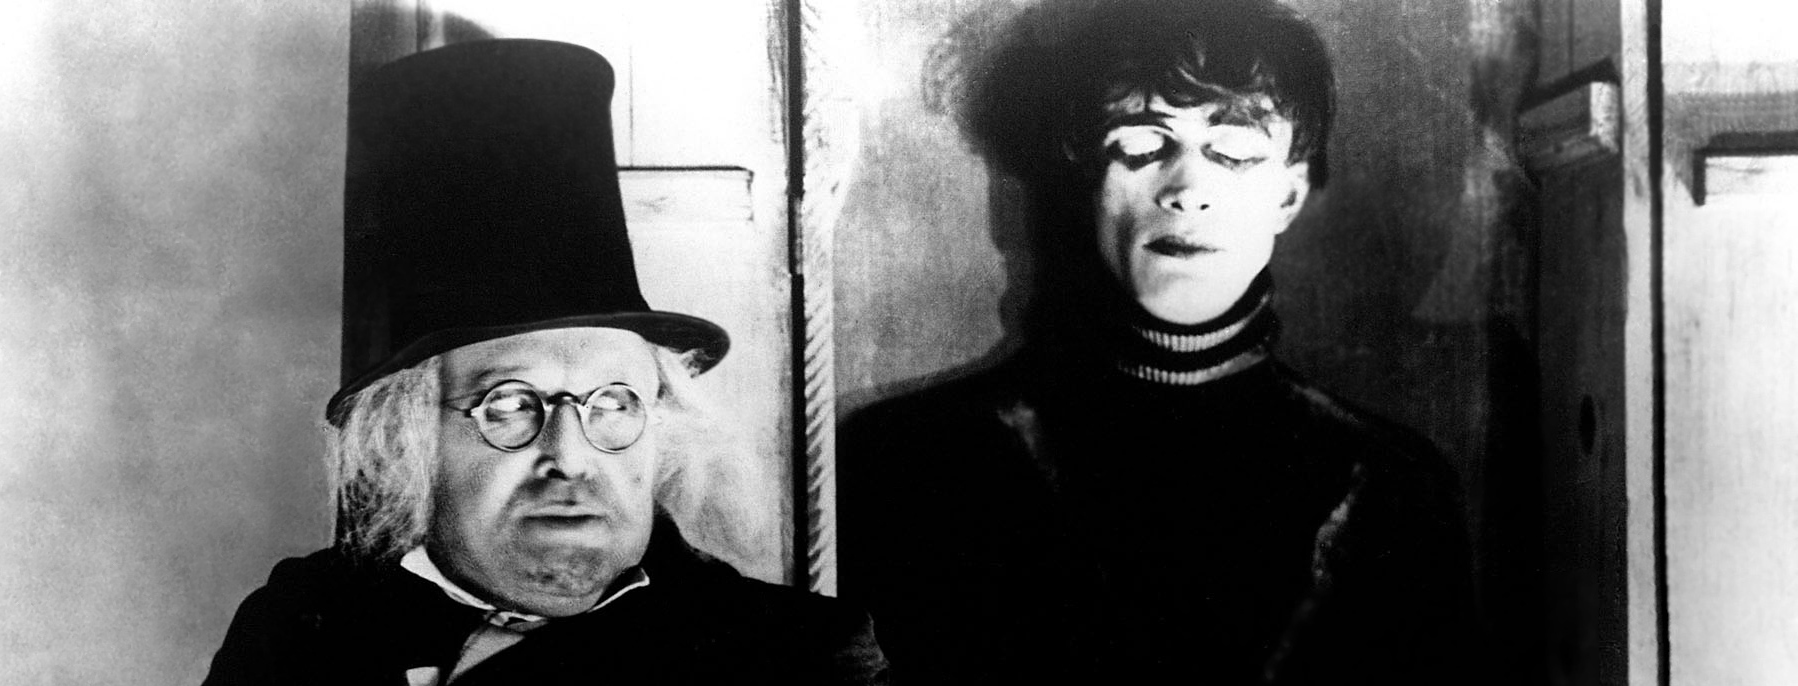 The Cabinet Of Dr Caligari 1920 Finally Got Round To